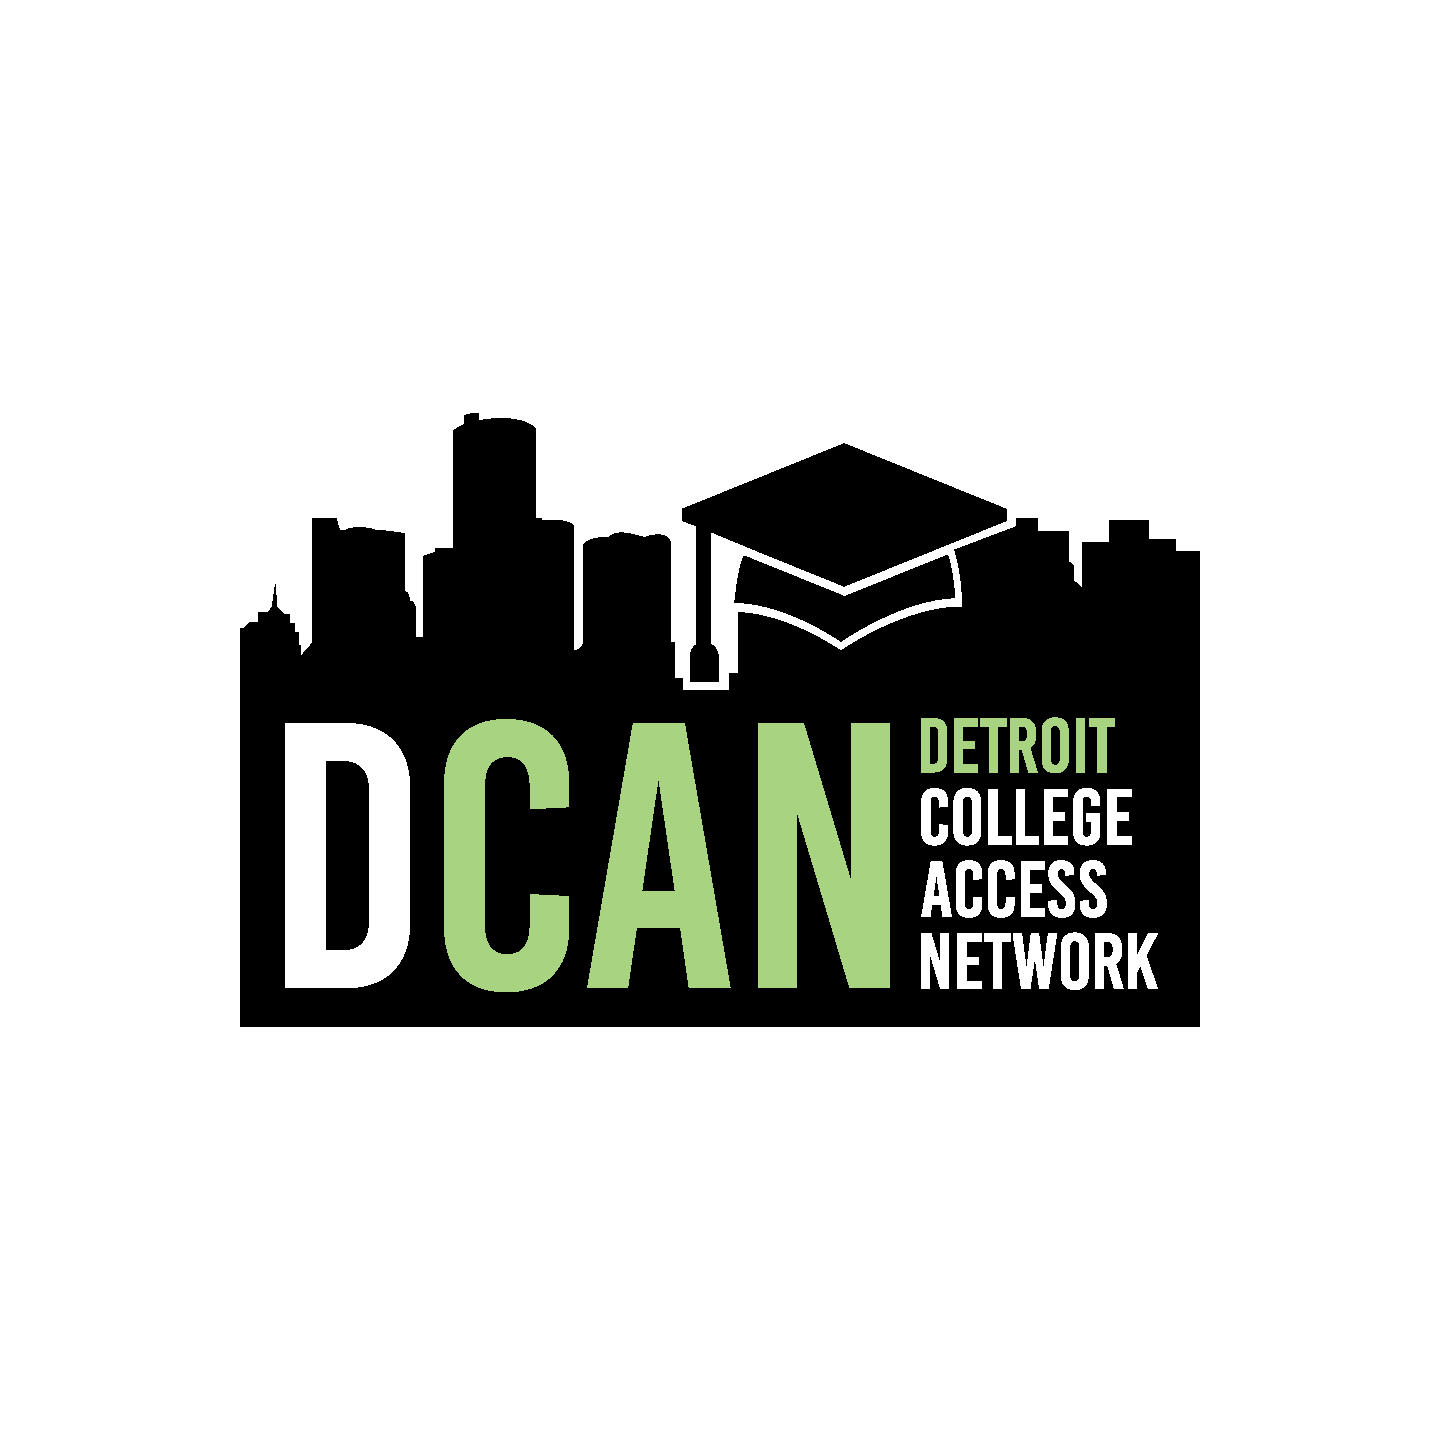 Detroit College Access Network